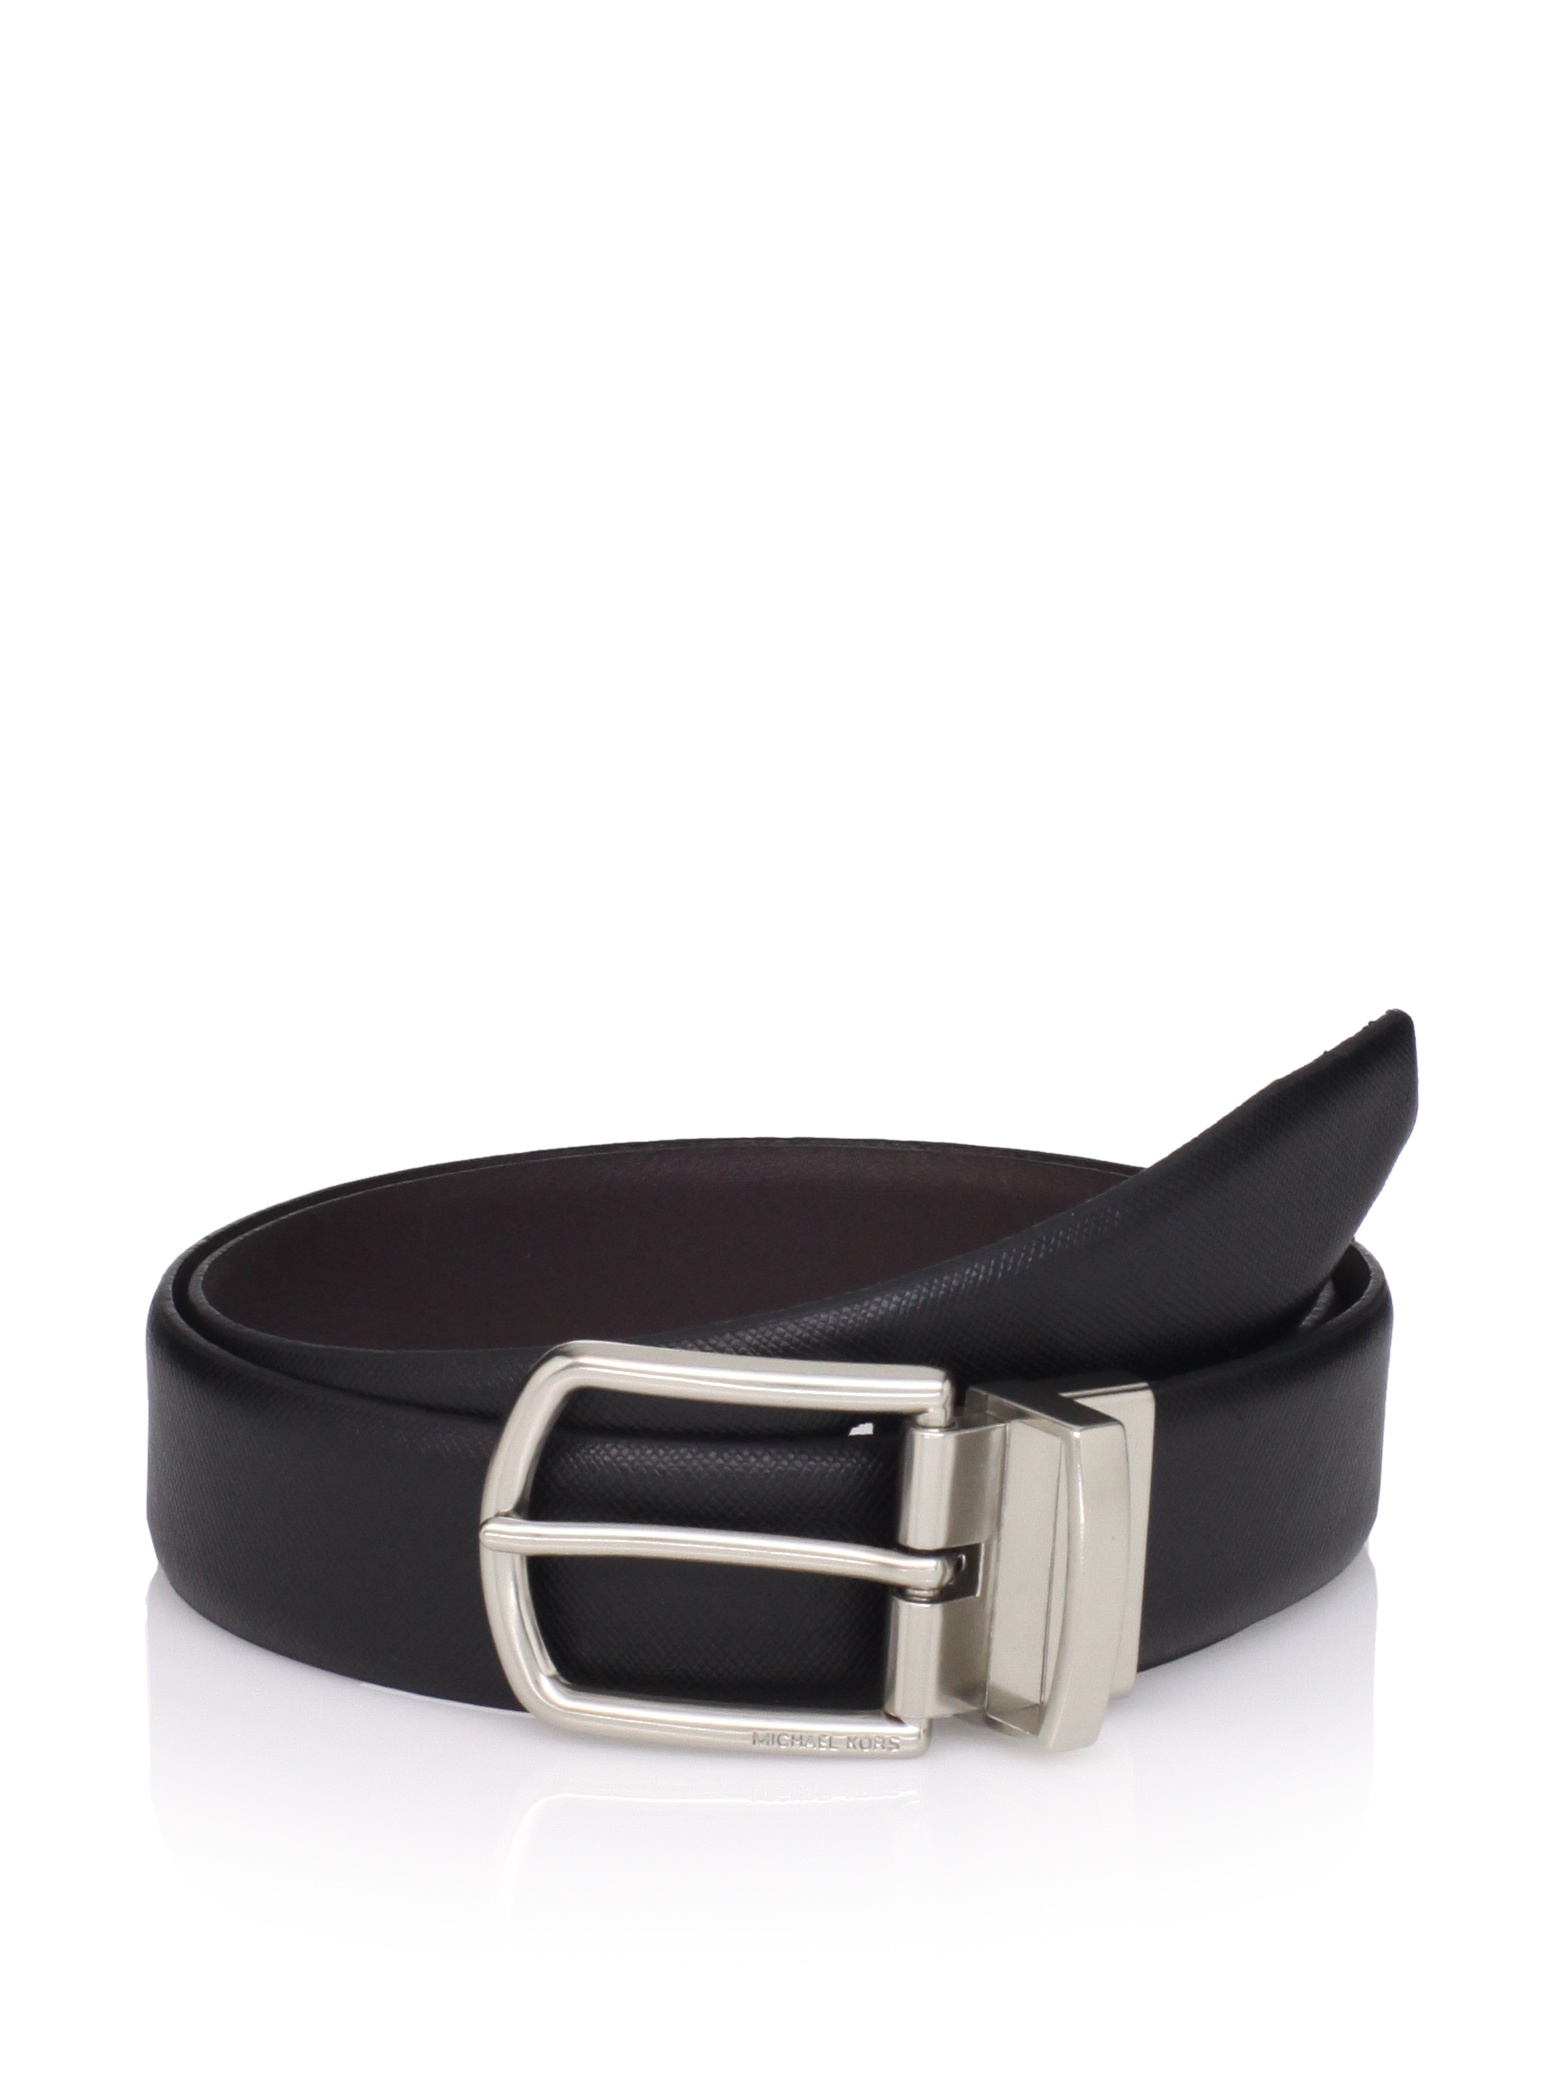 Michael Kors Men's Reversible Belt (Black/brown)